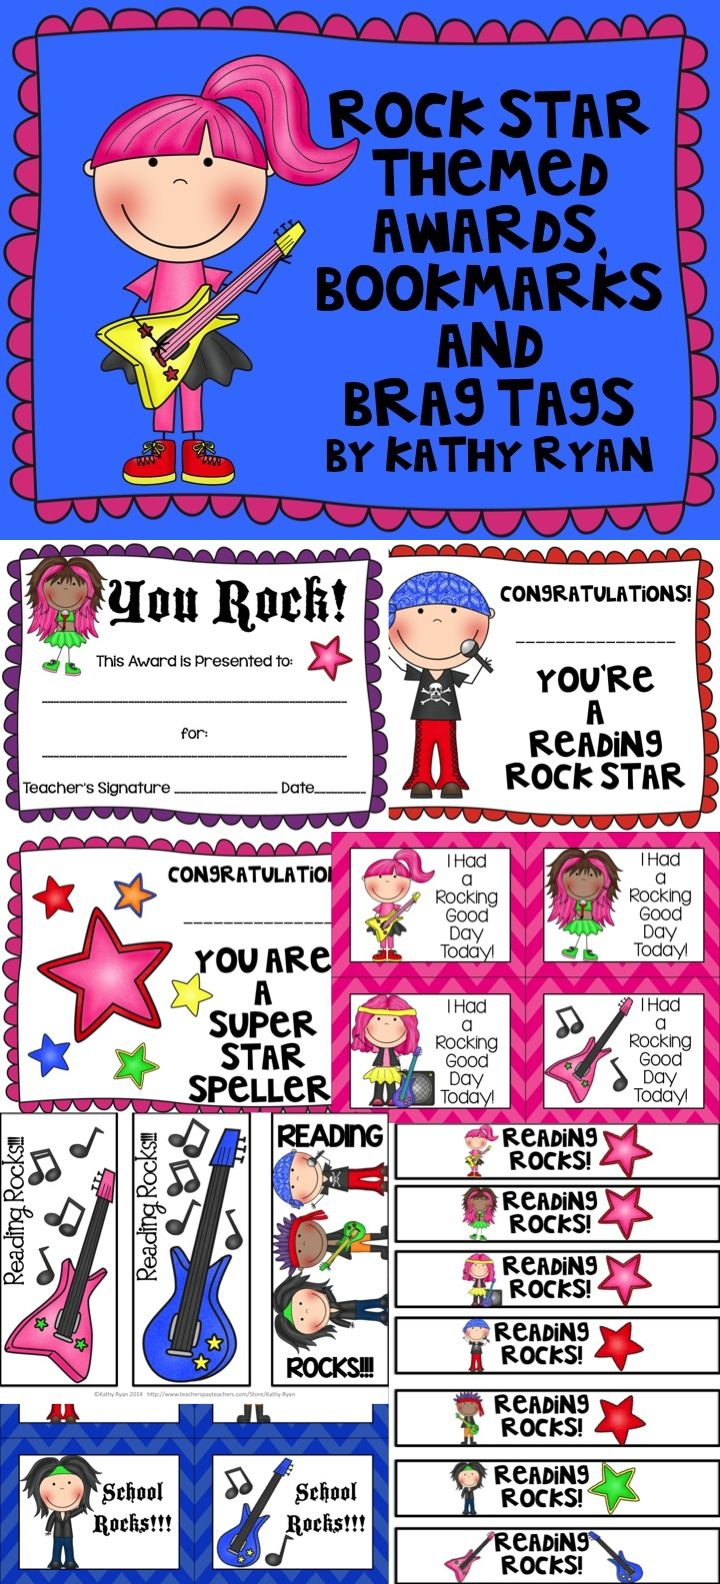 94 best creative praise images on pinterest school behavior and rock star themed awards certificates and brag tags yelopaper Choice Image